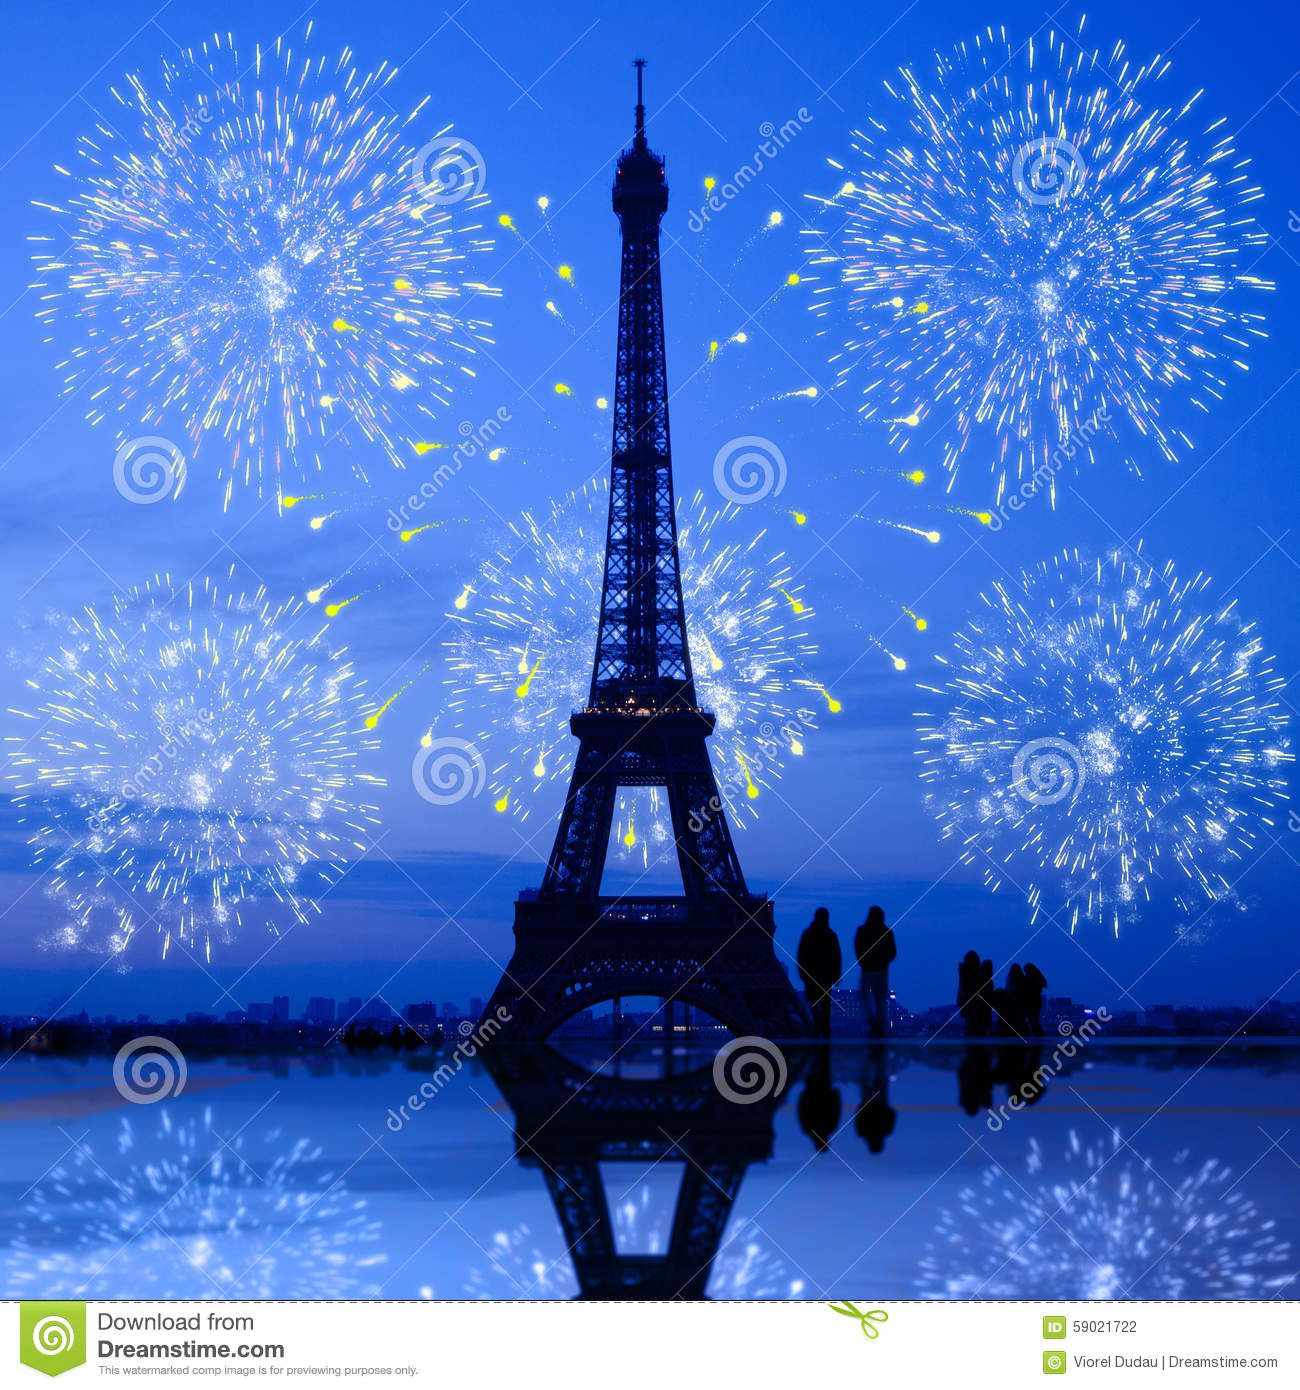 paris fireworks at eiffel tower stock photo - image of lights